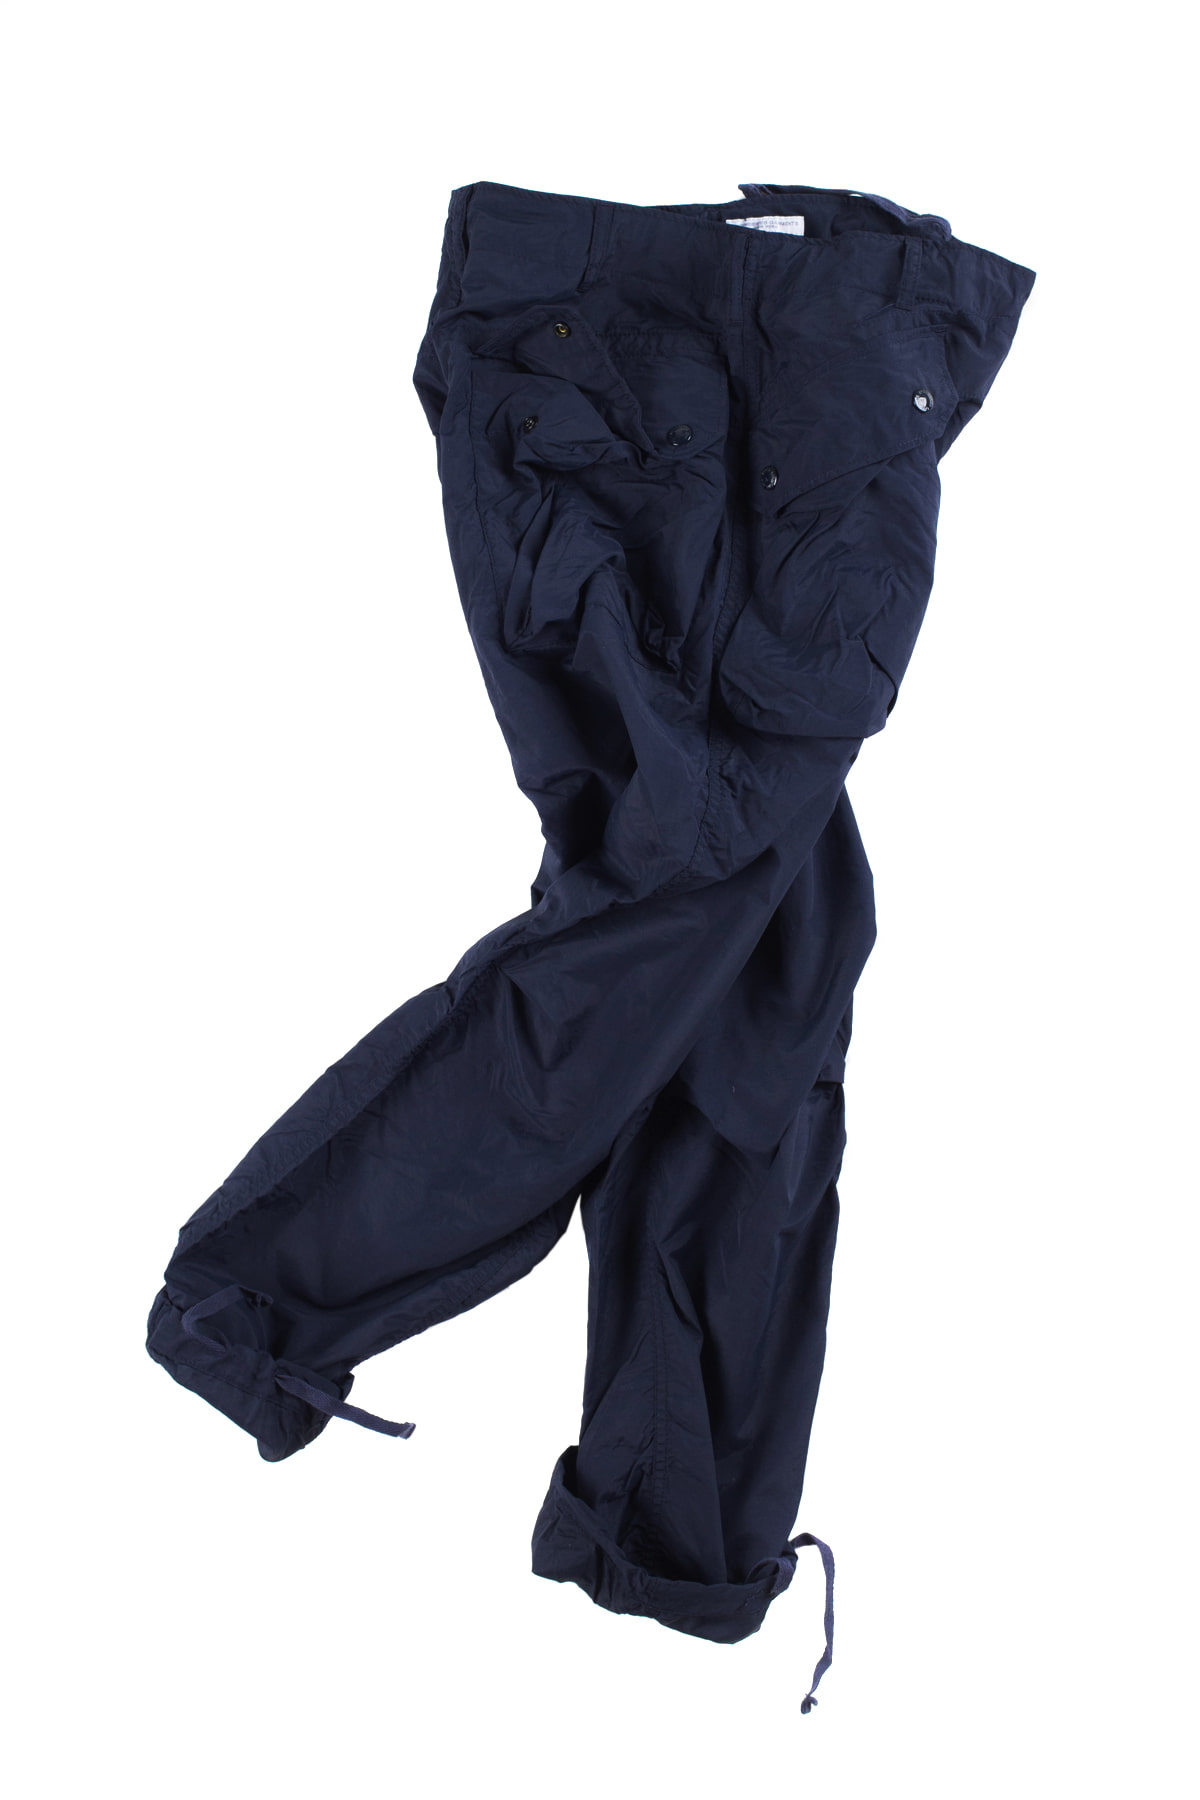 Engineered Garments : Norwegian Pants (Navy)